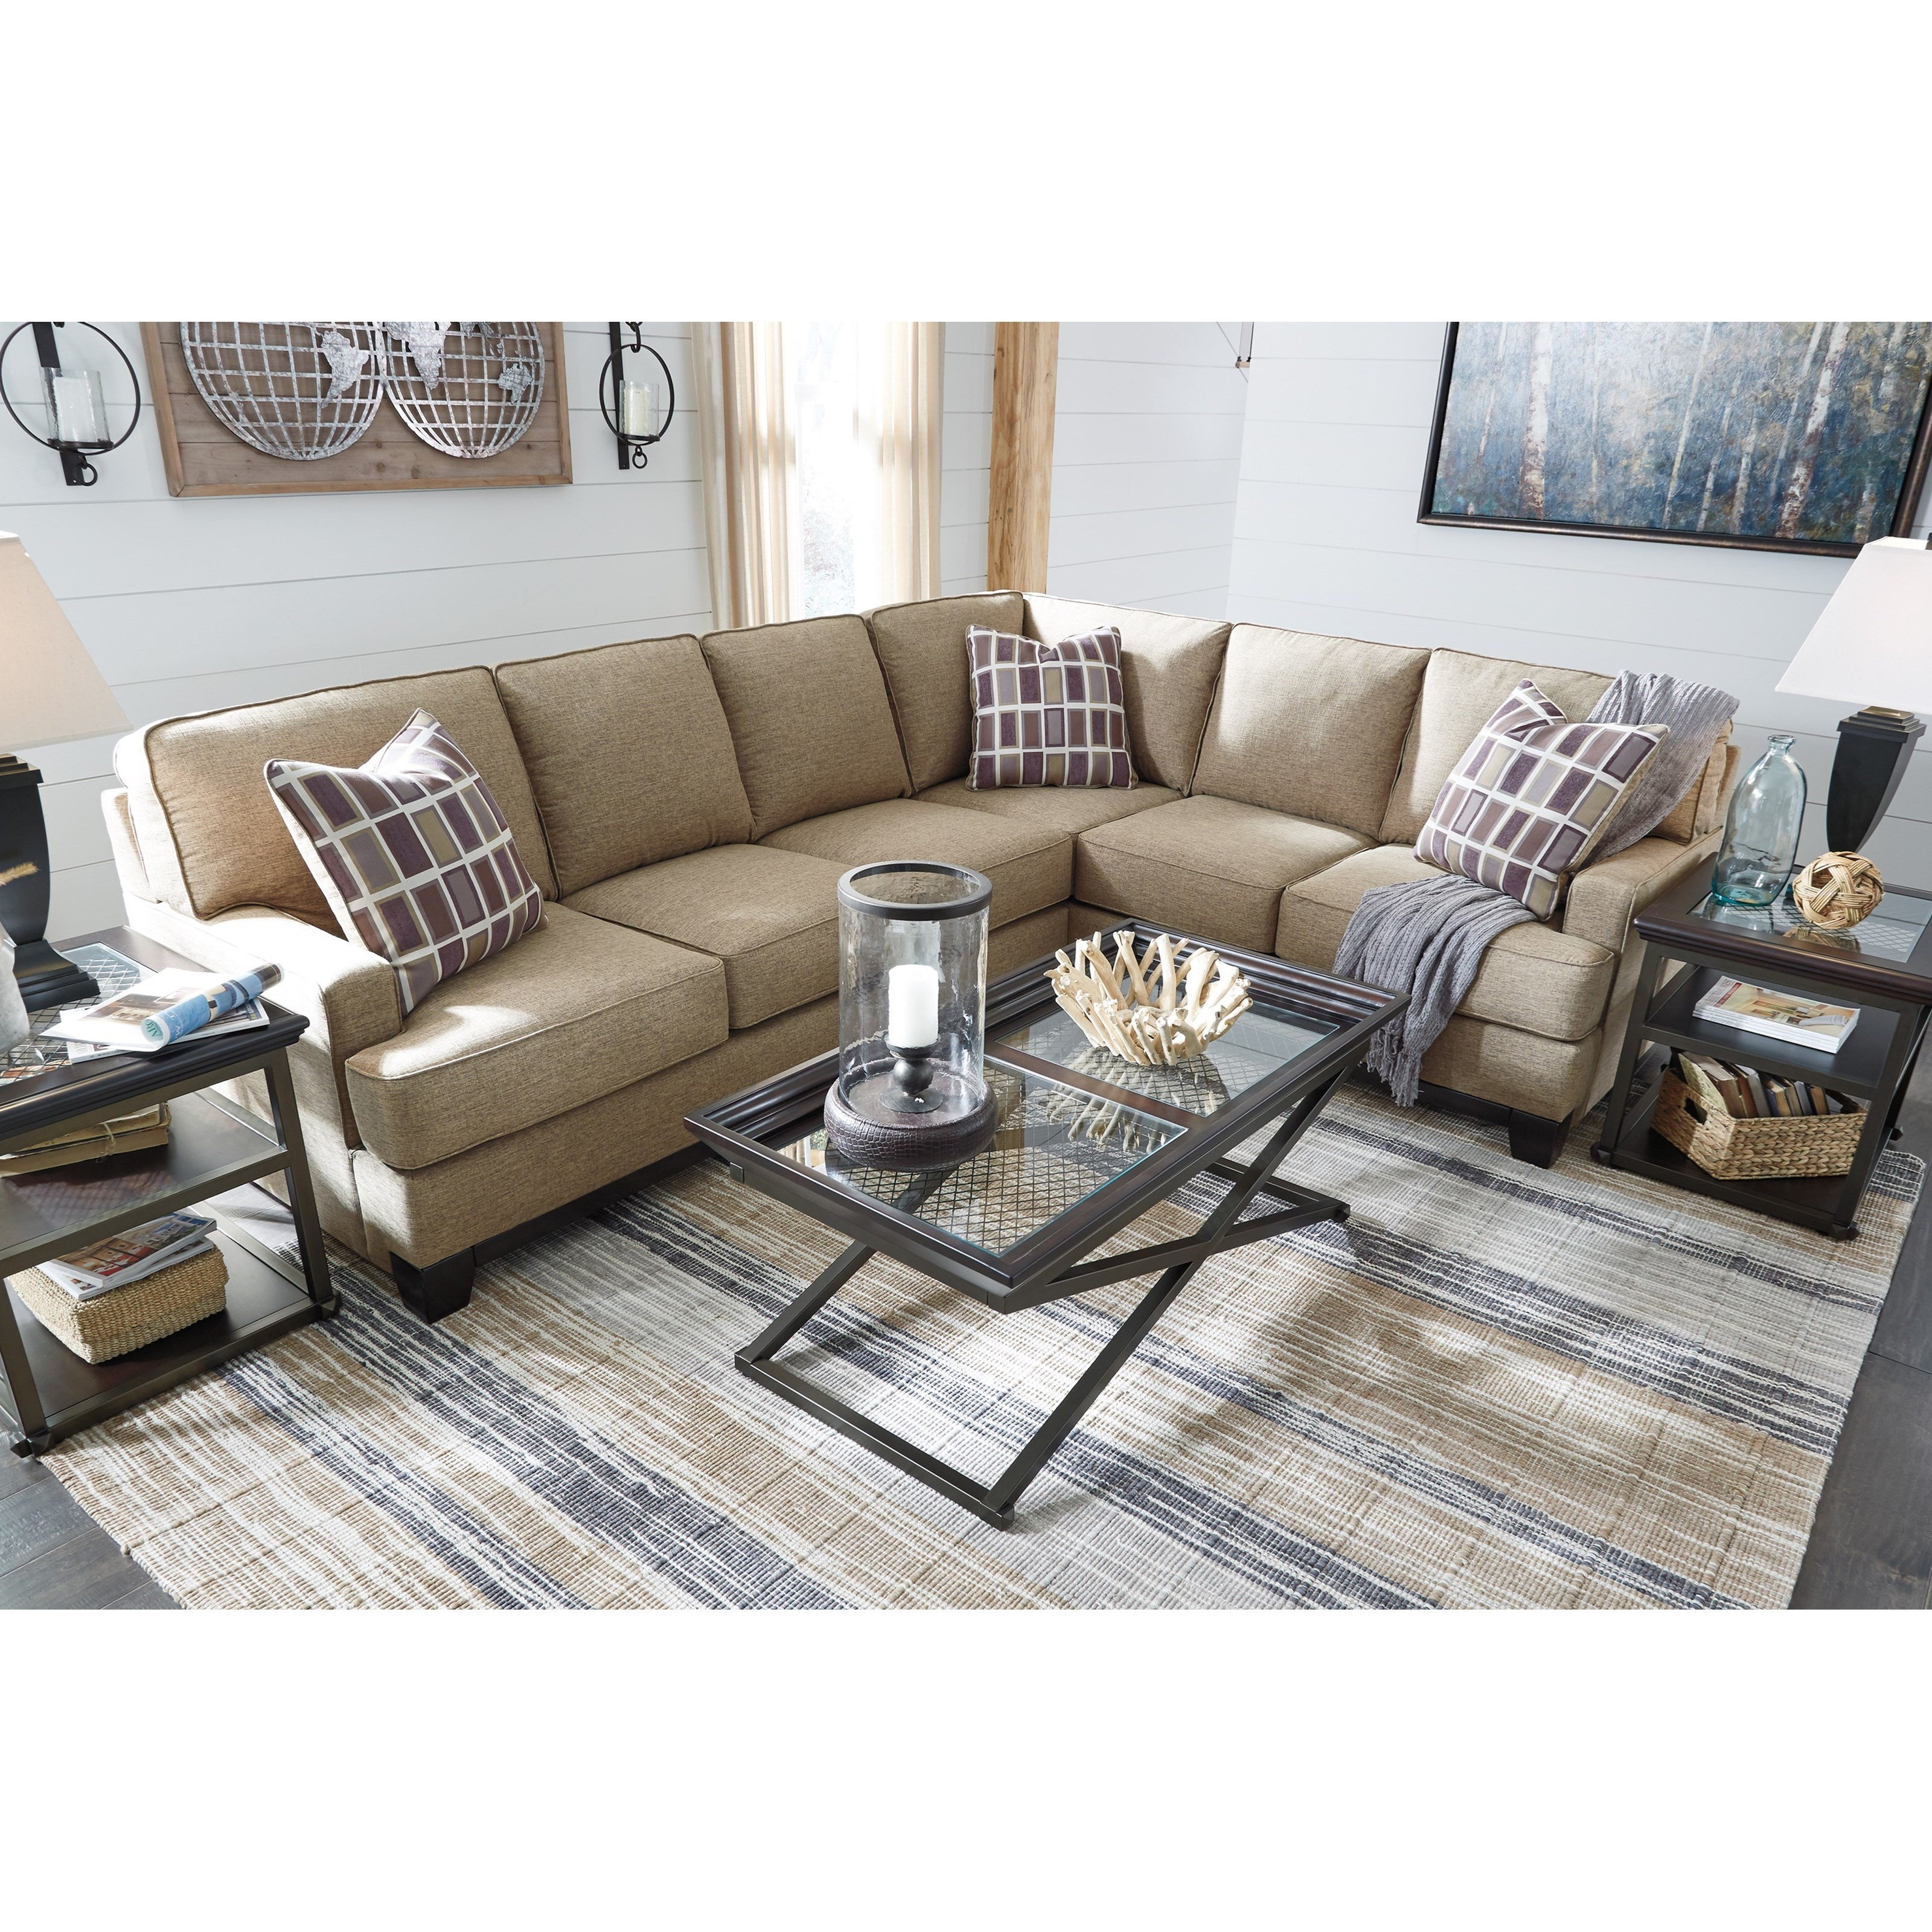 Benchcraft Larkhaven Contemporary 2-Piece Sectional With